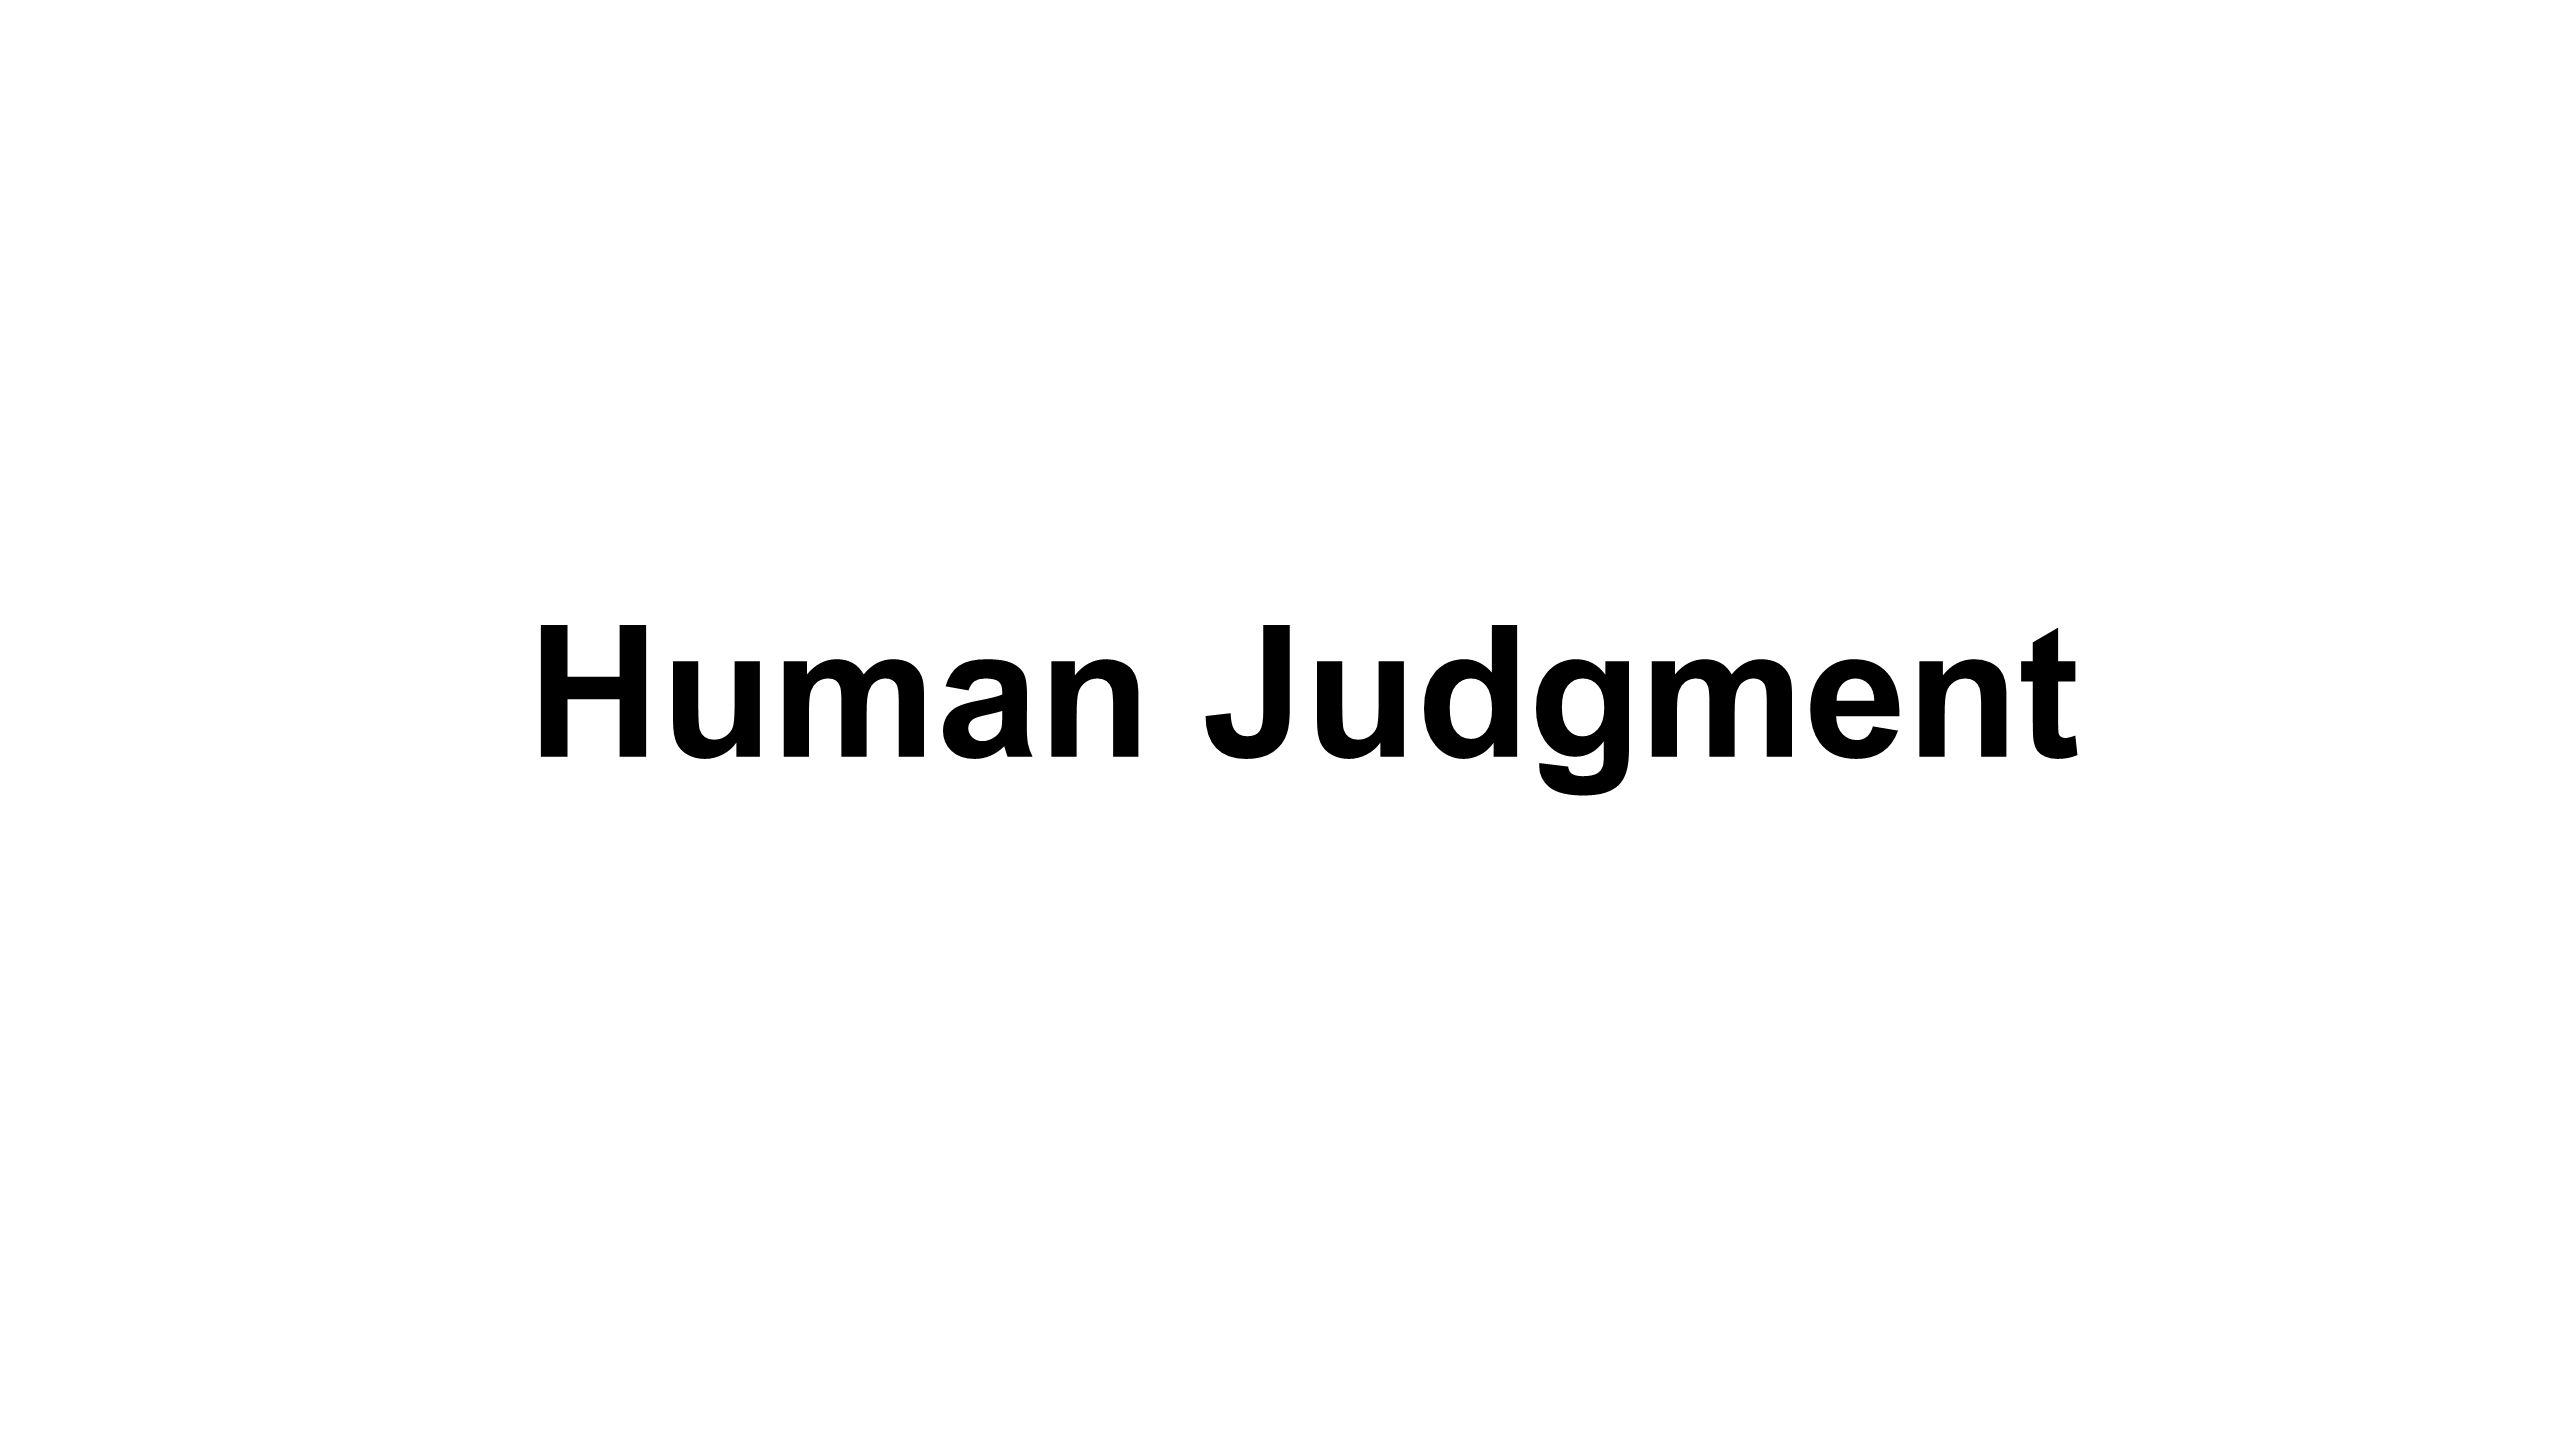 Human Judgment